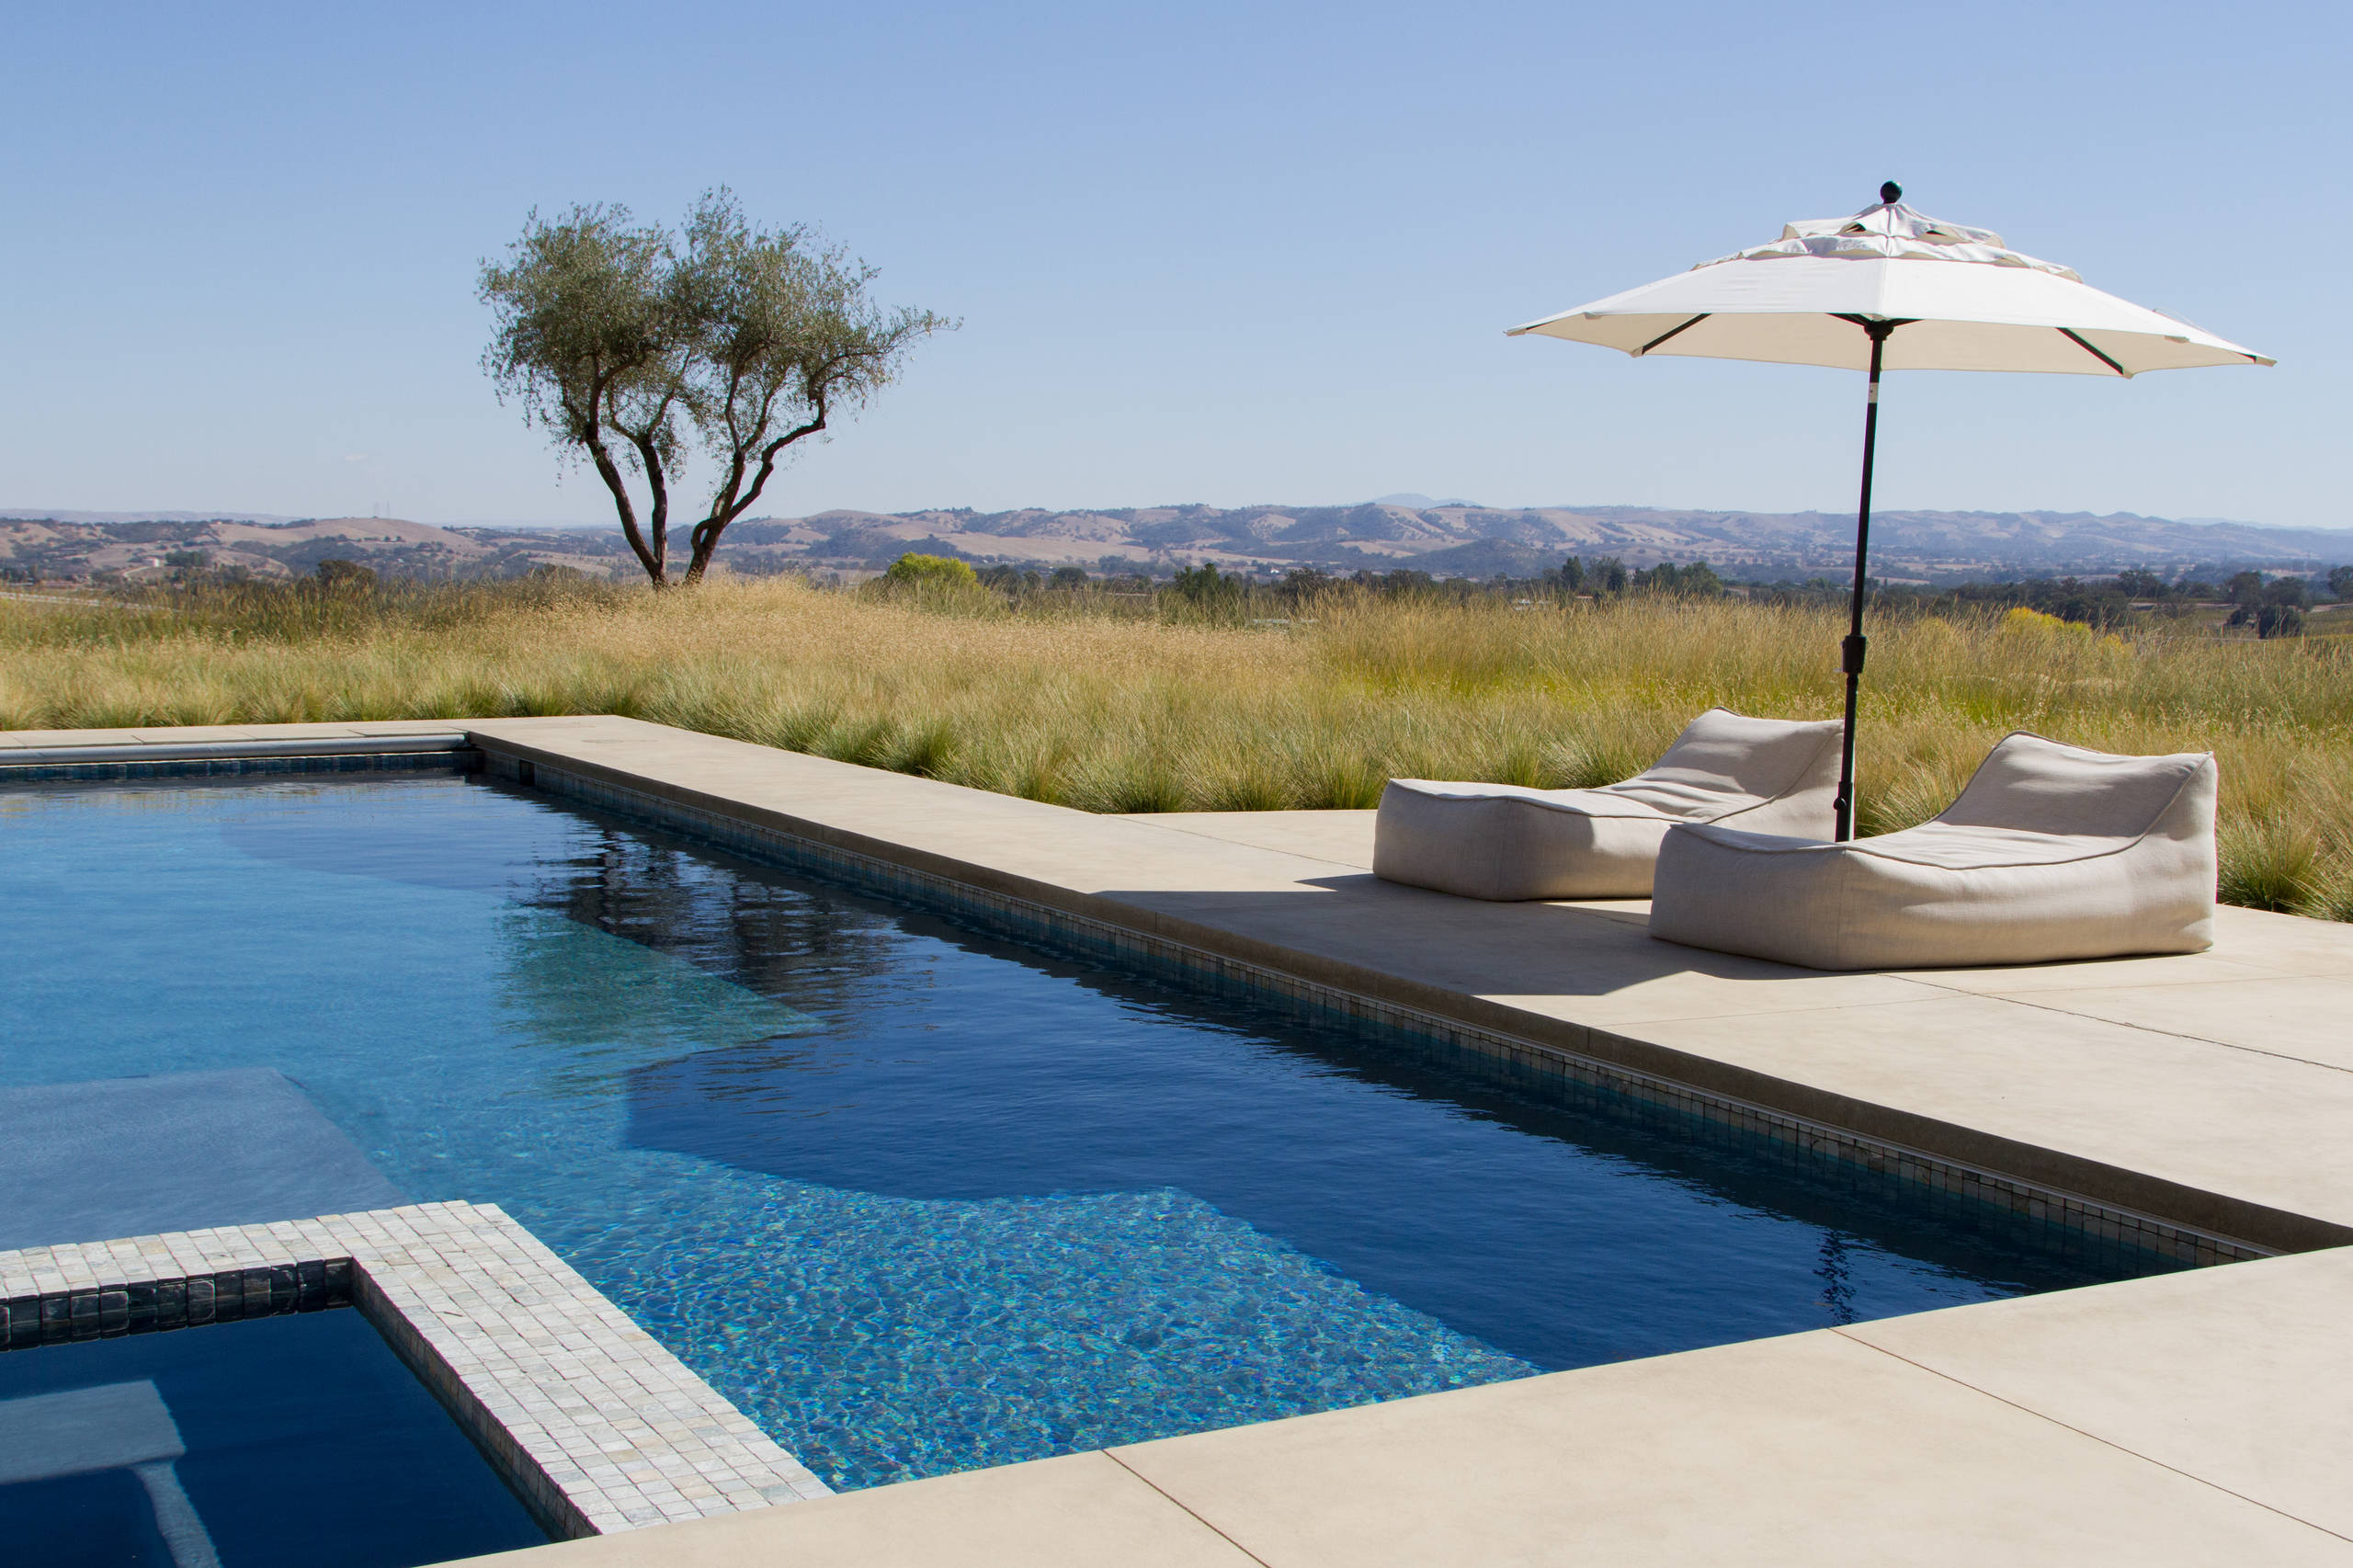 18 Dazzling Modern Swimming Pool Designs - The Ultimate ... on Modern Backyard Ideas With Pool id=15301